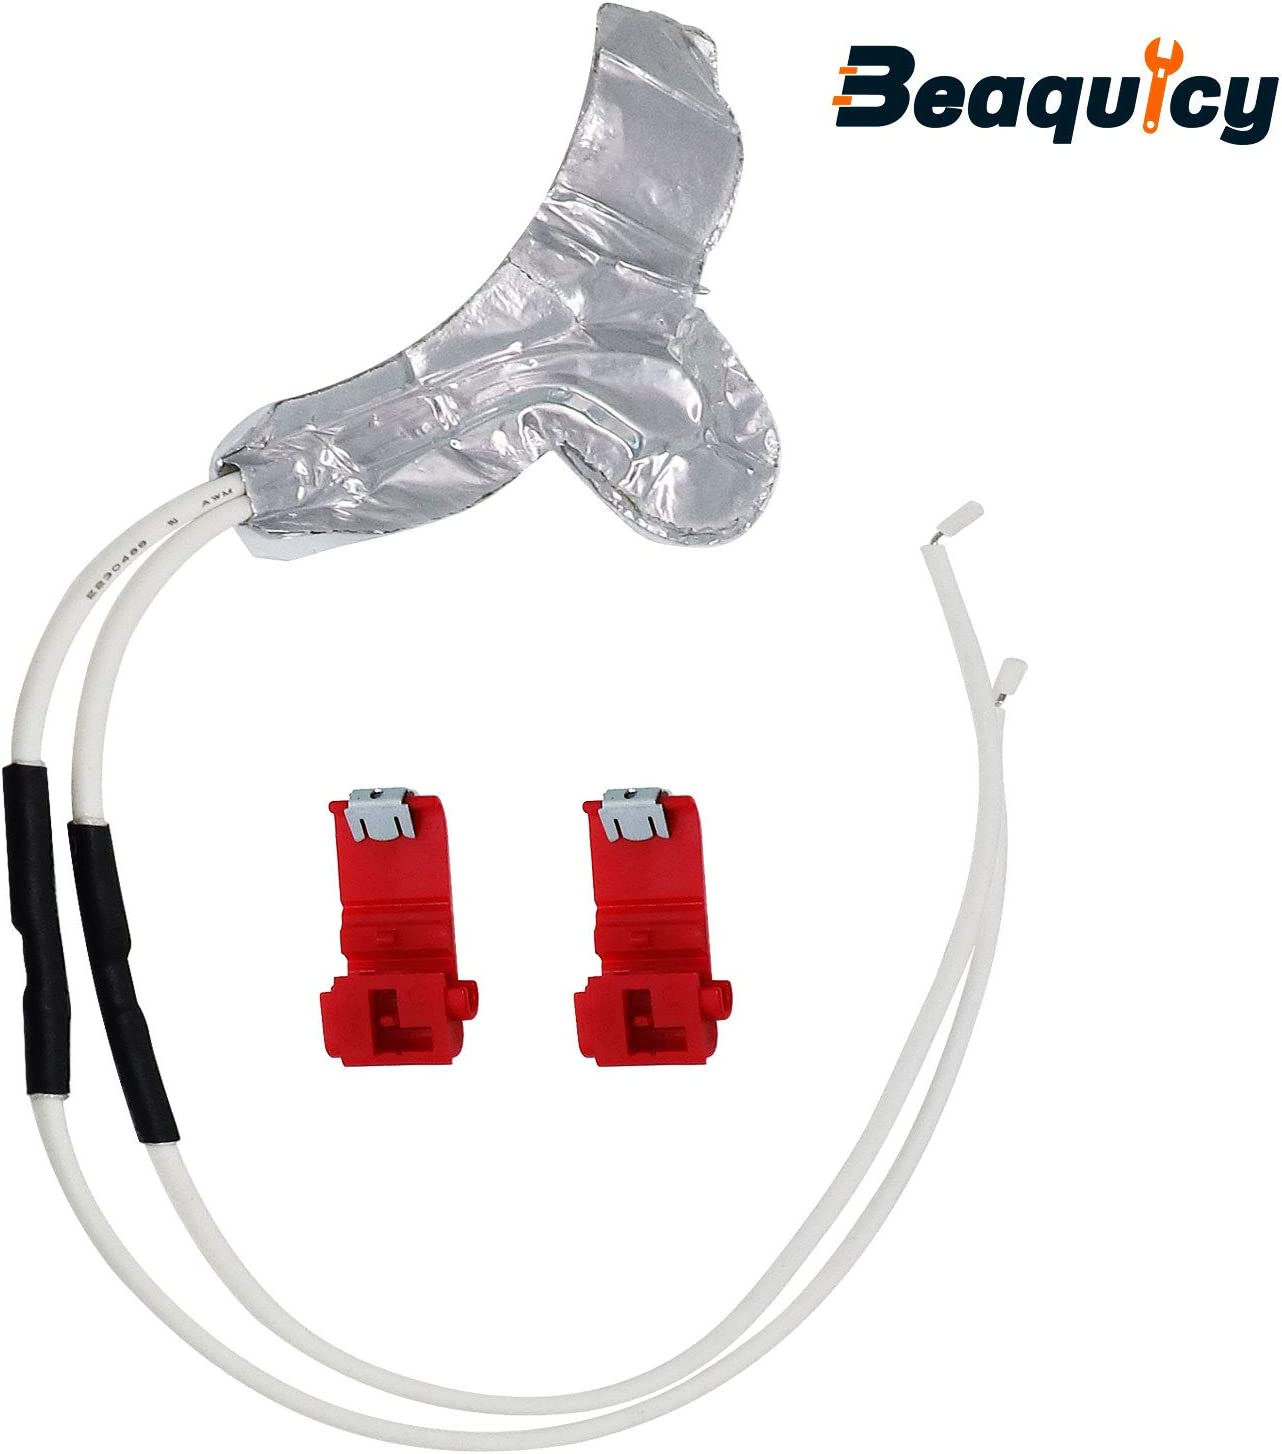 Beaquicy WR49X10173 Dispenser Tube Heater Kit - Replacement for General Electric GE Refrigerator